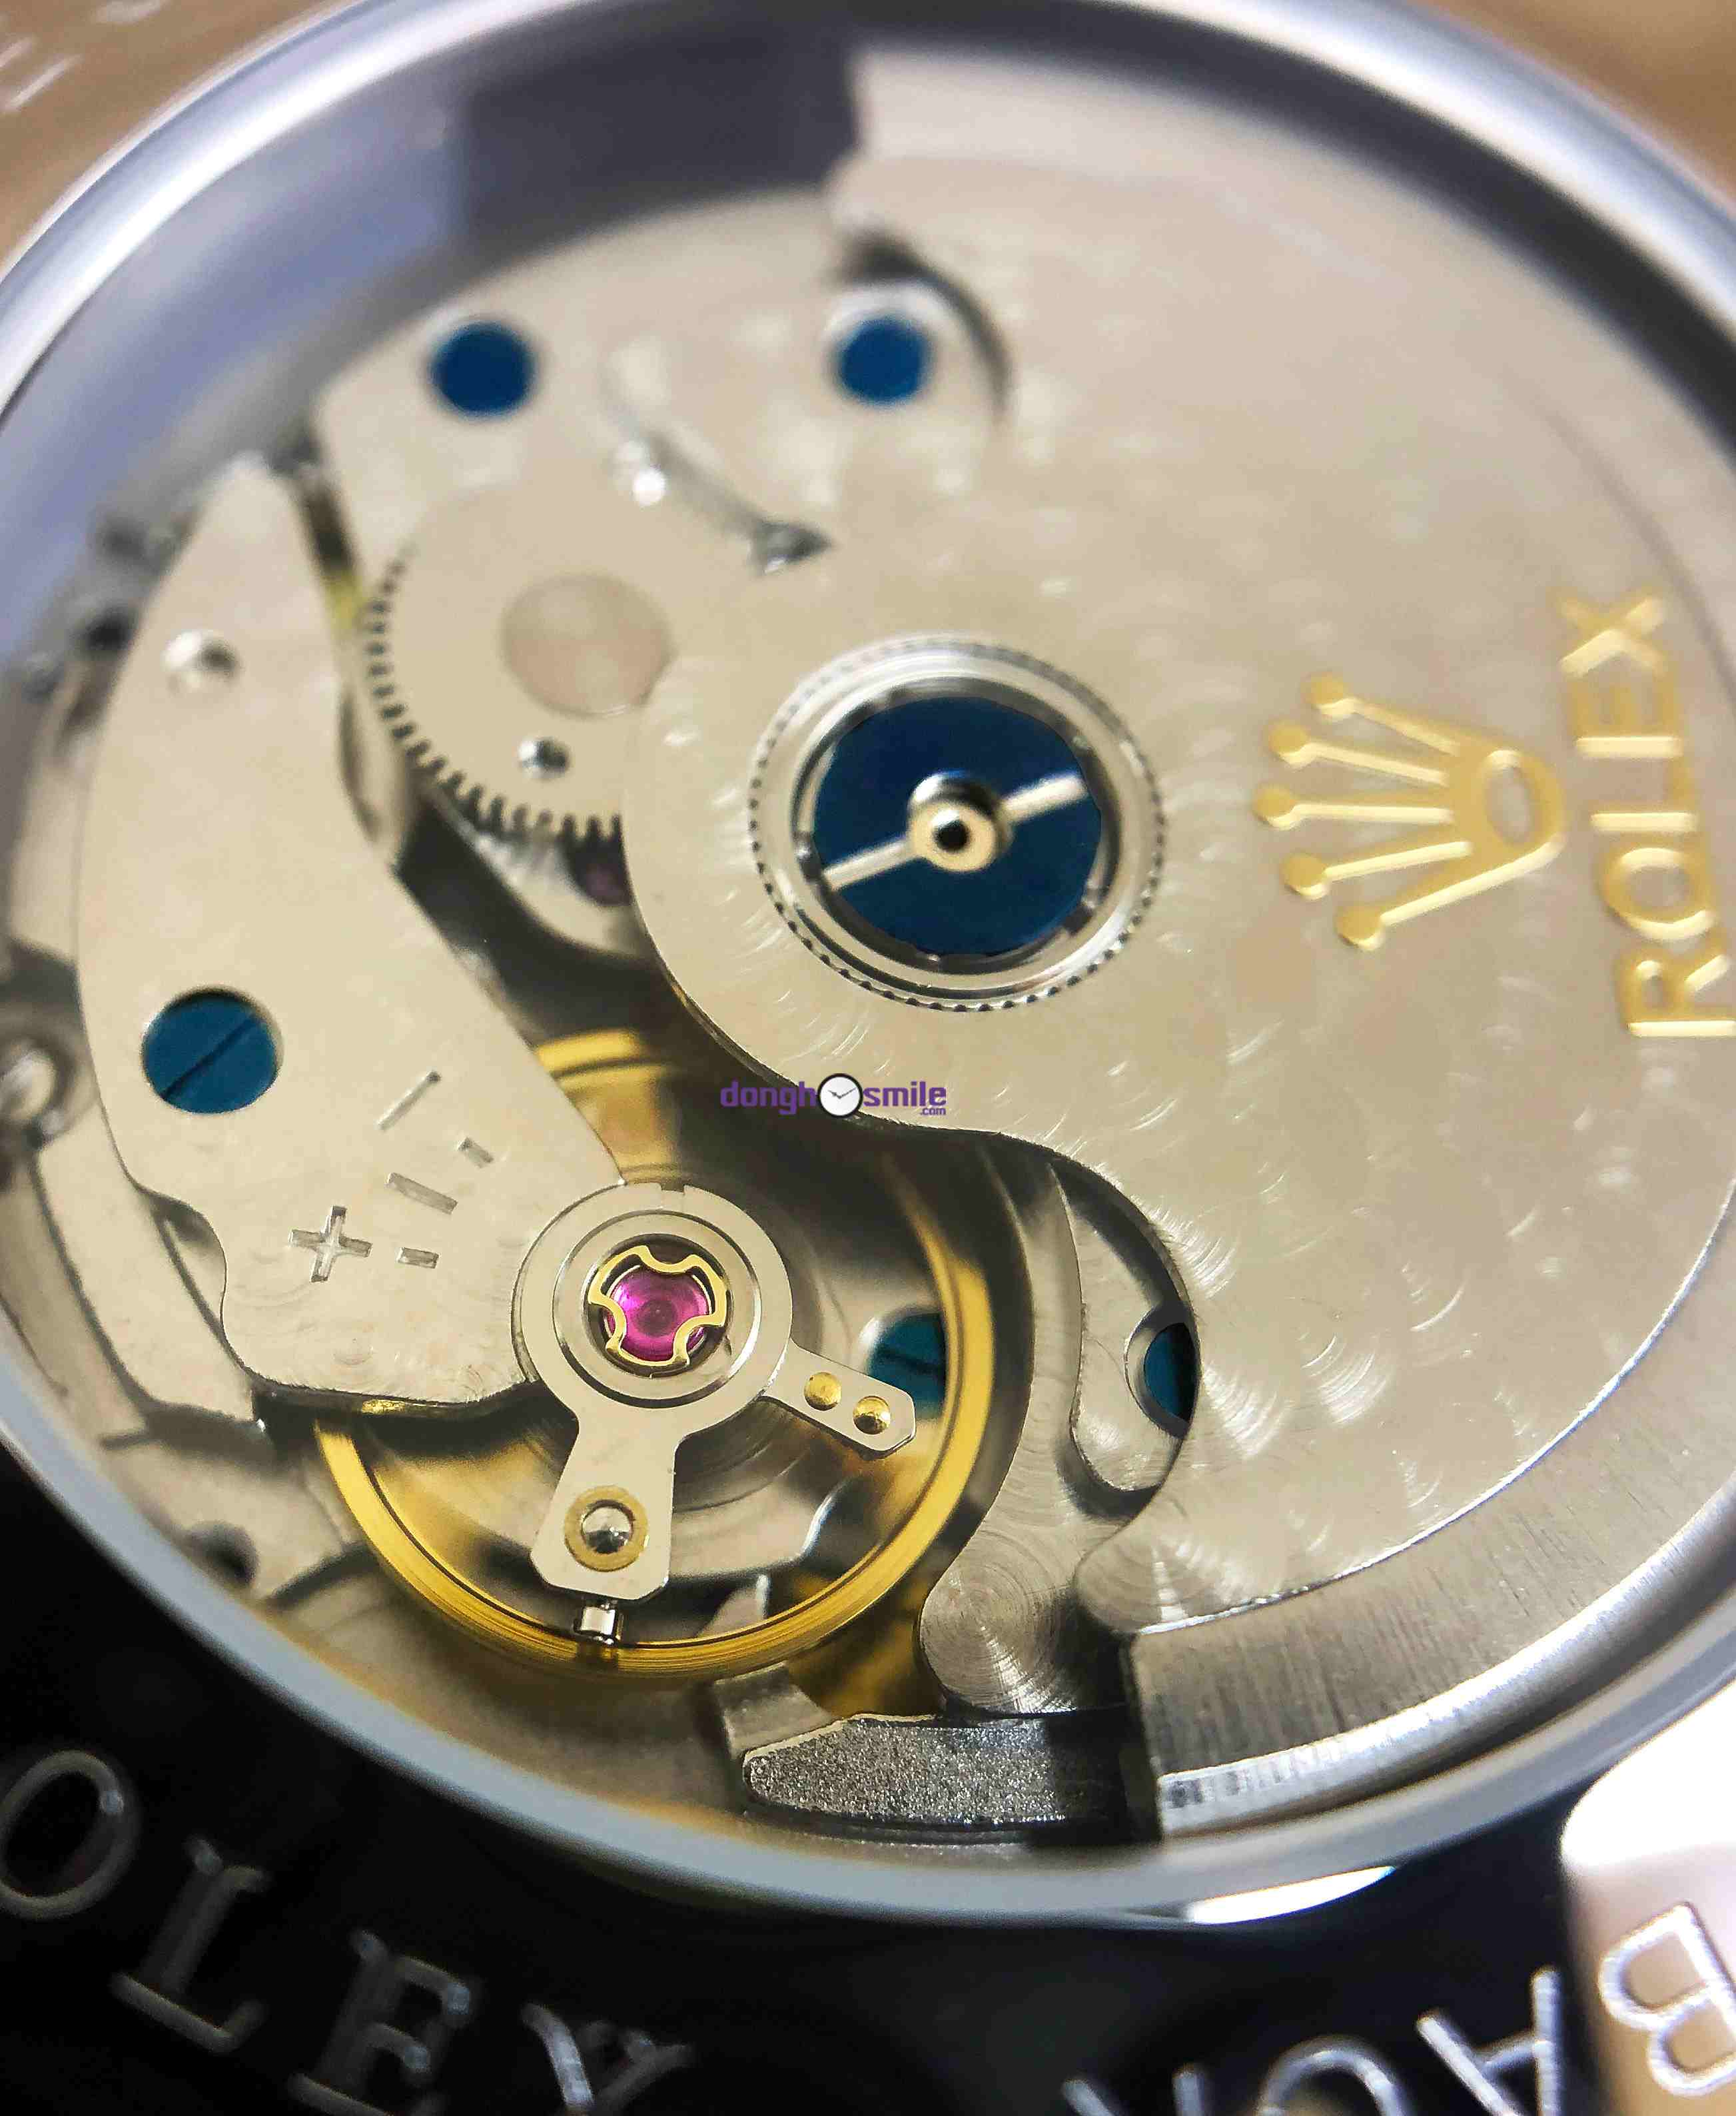 dong-ho-rolex-cellini-nam-gia-tot-a-rl06-08